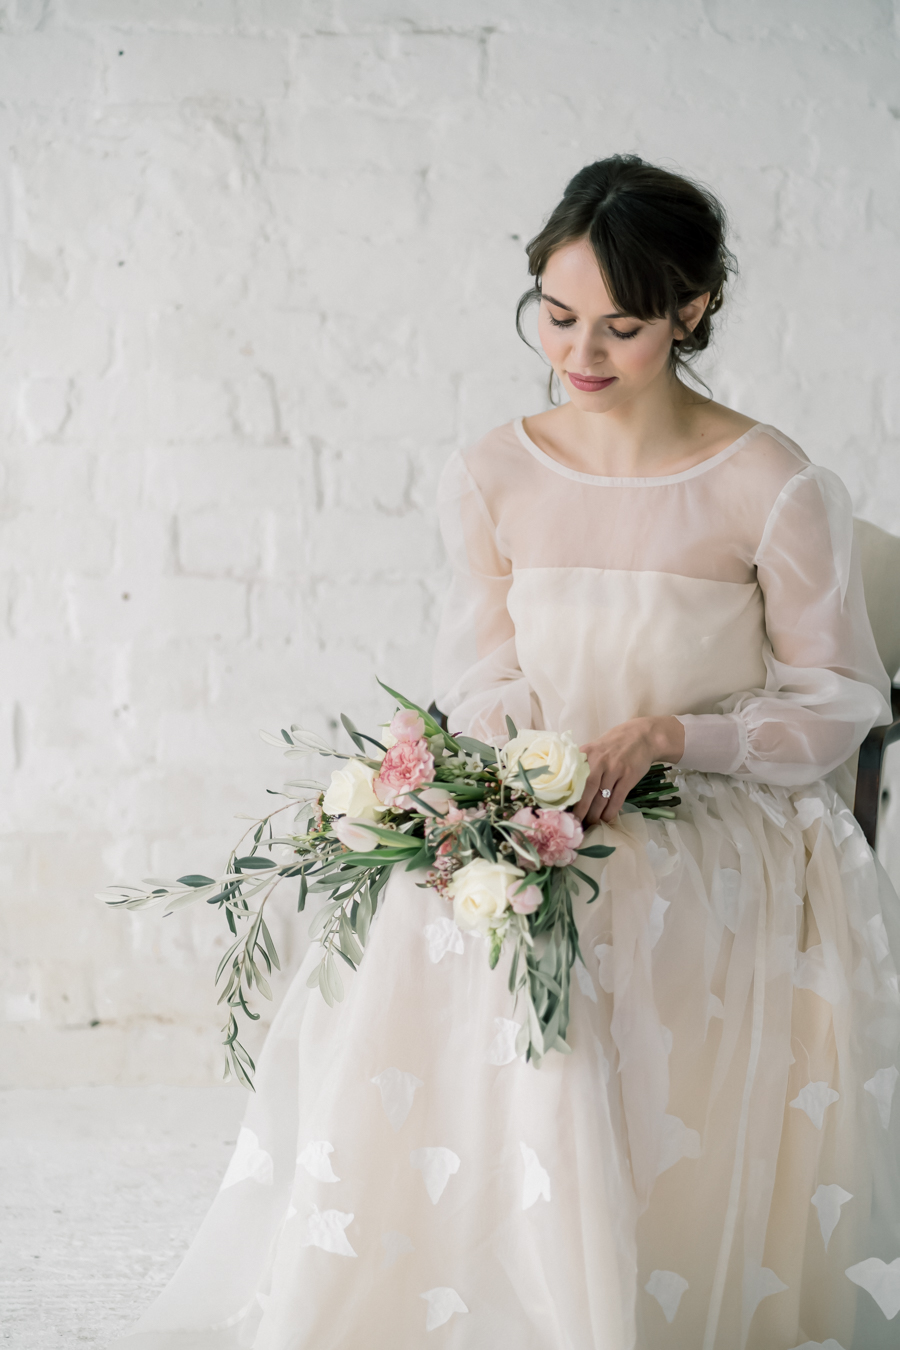 Spring blossom wedding style inspiration and ideas with Chloe Ely Photography at Barton Court (23)